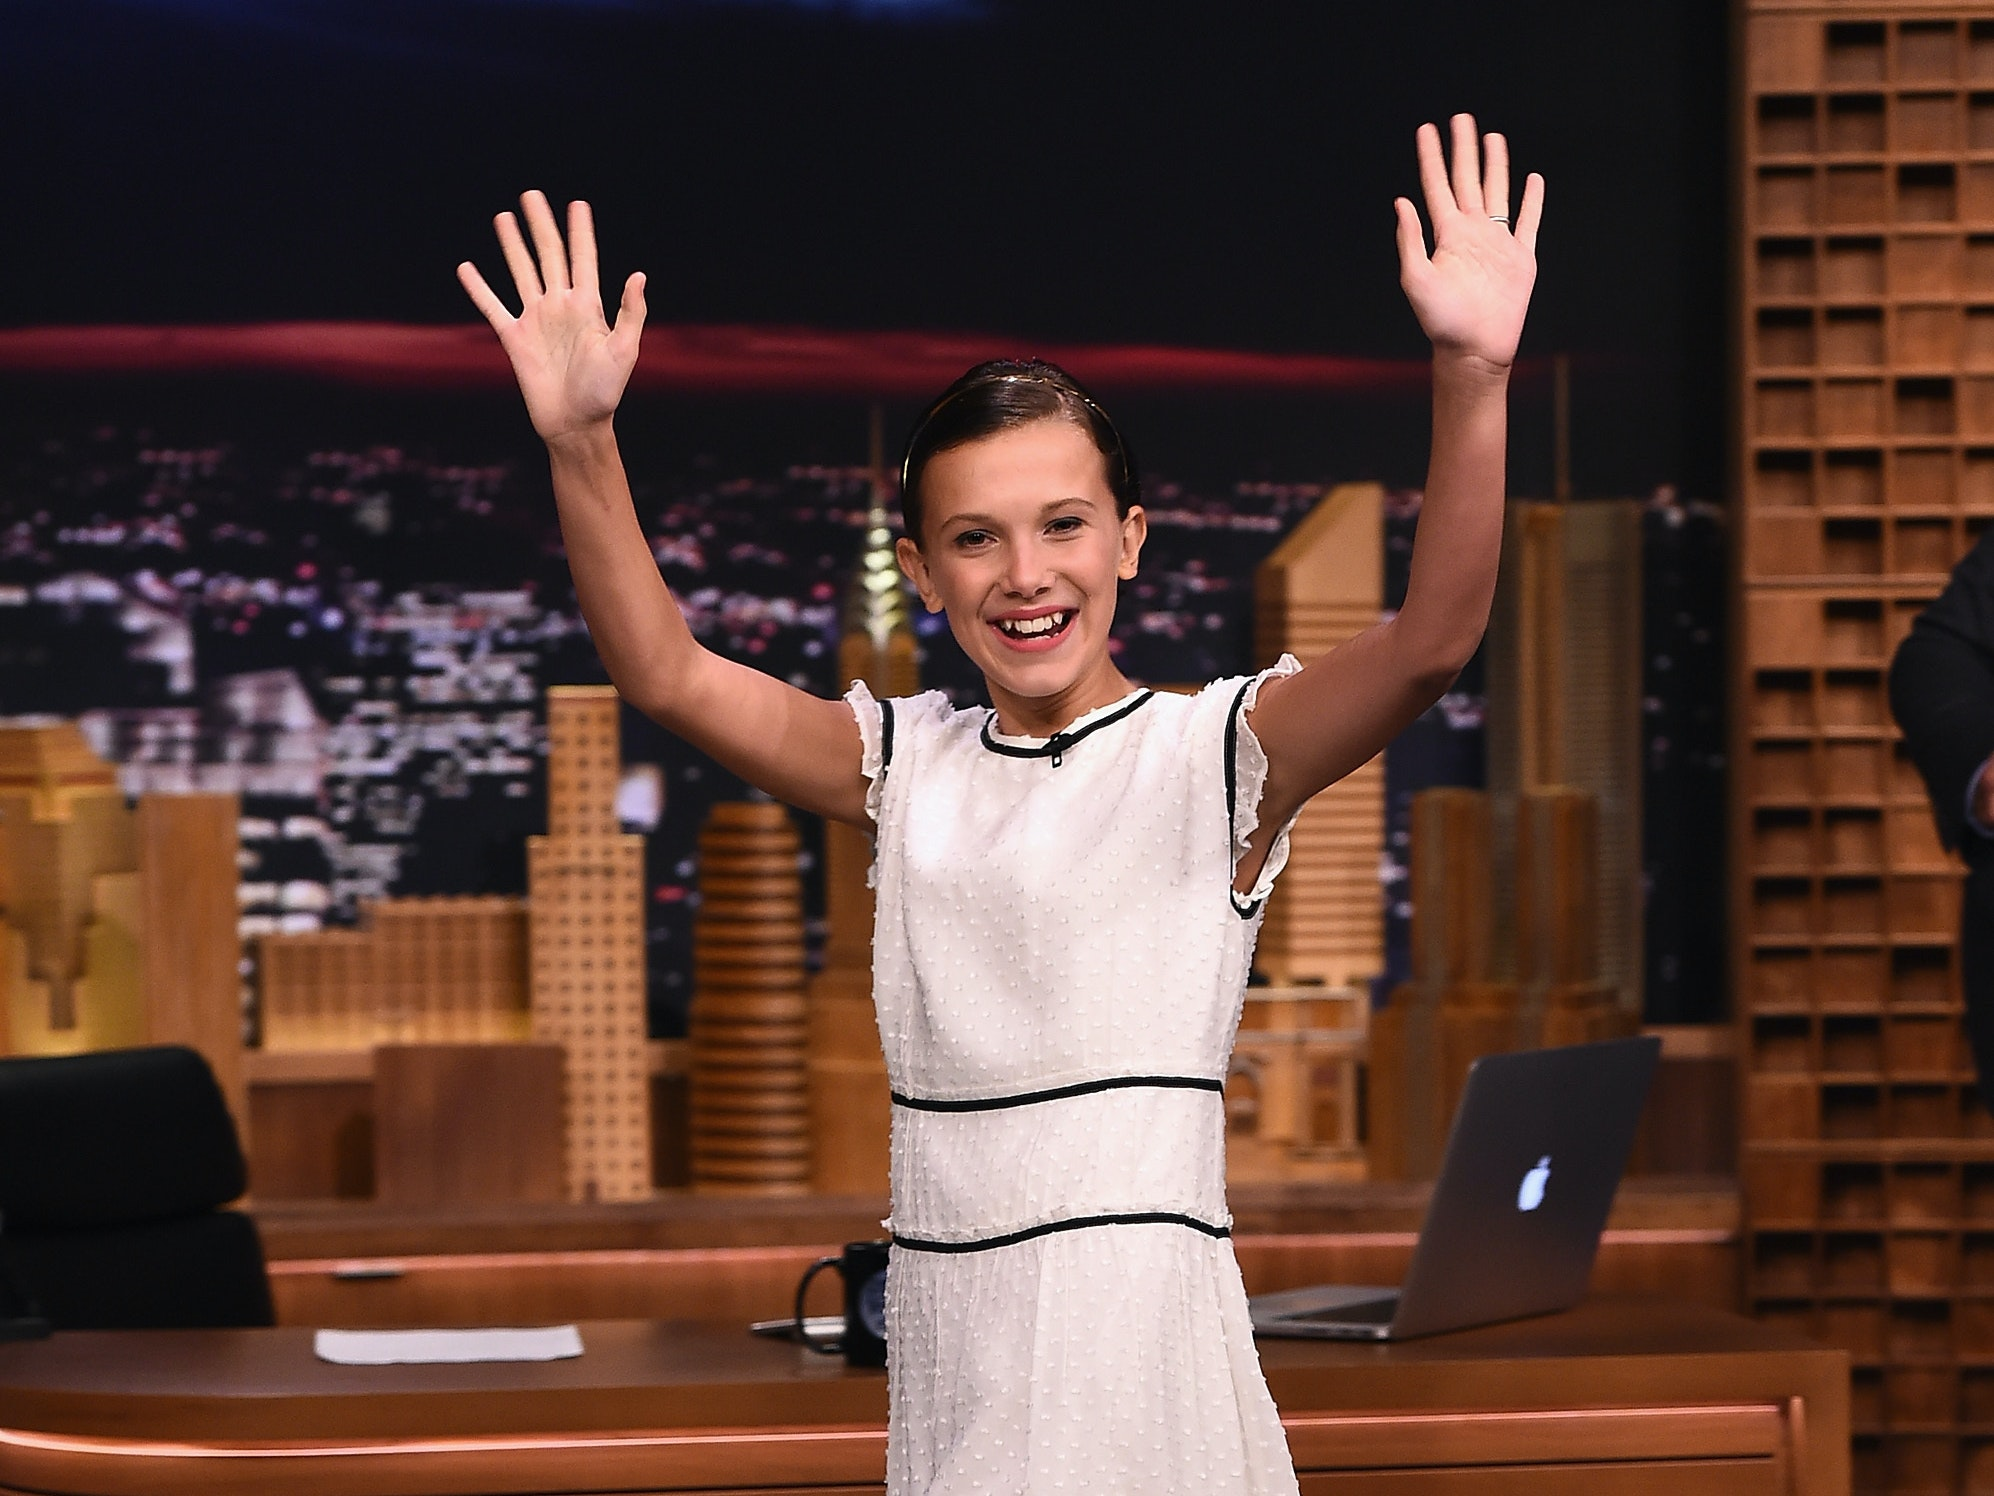 NEW YORK, NY - AUGUST 31:  Millie Bobby Brown visits 'The Tonight Show Starring Jimmy Fallon' at Rockefeller Center on August 31, 2016 in New York City.  (Photo by Theo Wargo/Getty Images for NBC)